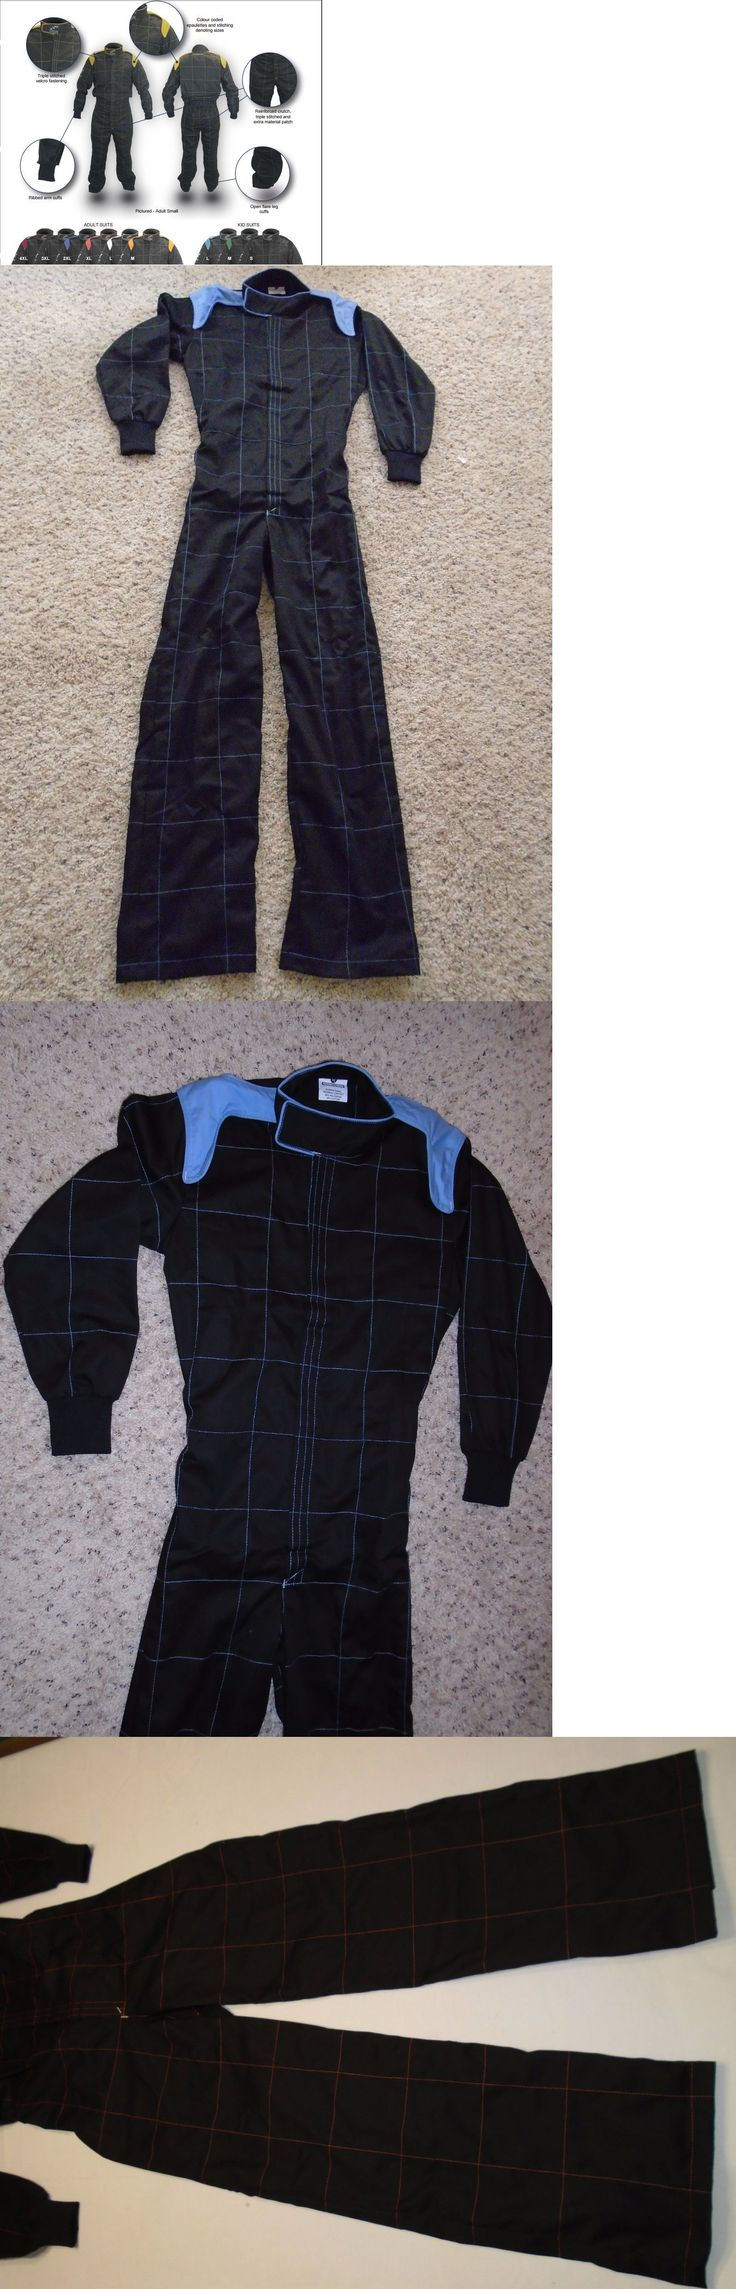 Clothing and Protective Gear 159029: Go Kart Racing Suit Corporate Racing Overalls With Color Shoulder N Box Quilted -> BUY IT NOW ONLY: $46 on eBay!